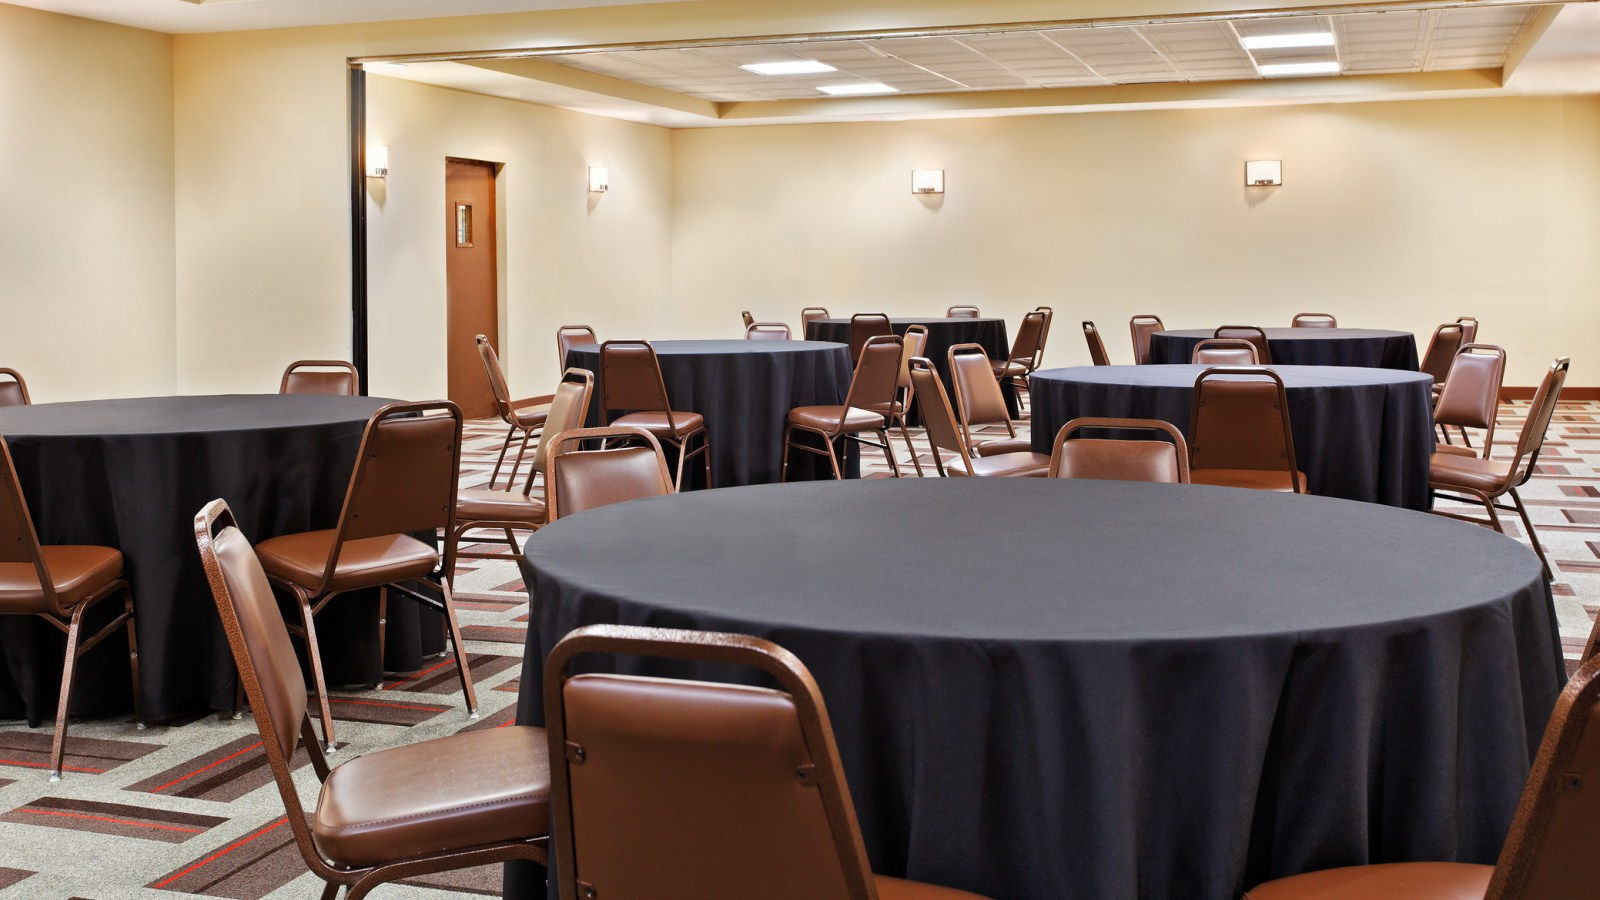 Event Space in College Station - Meetings